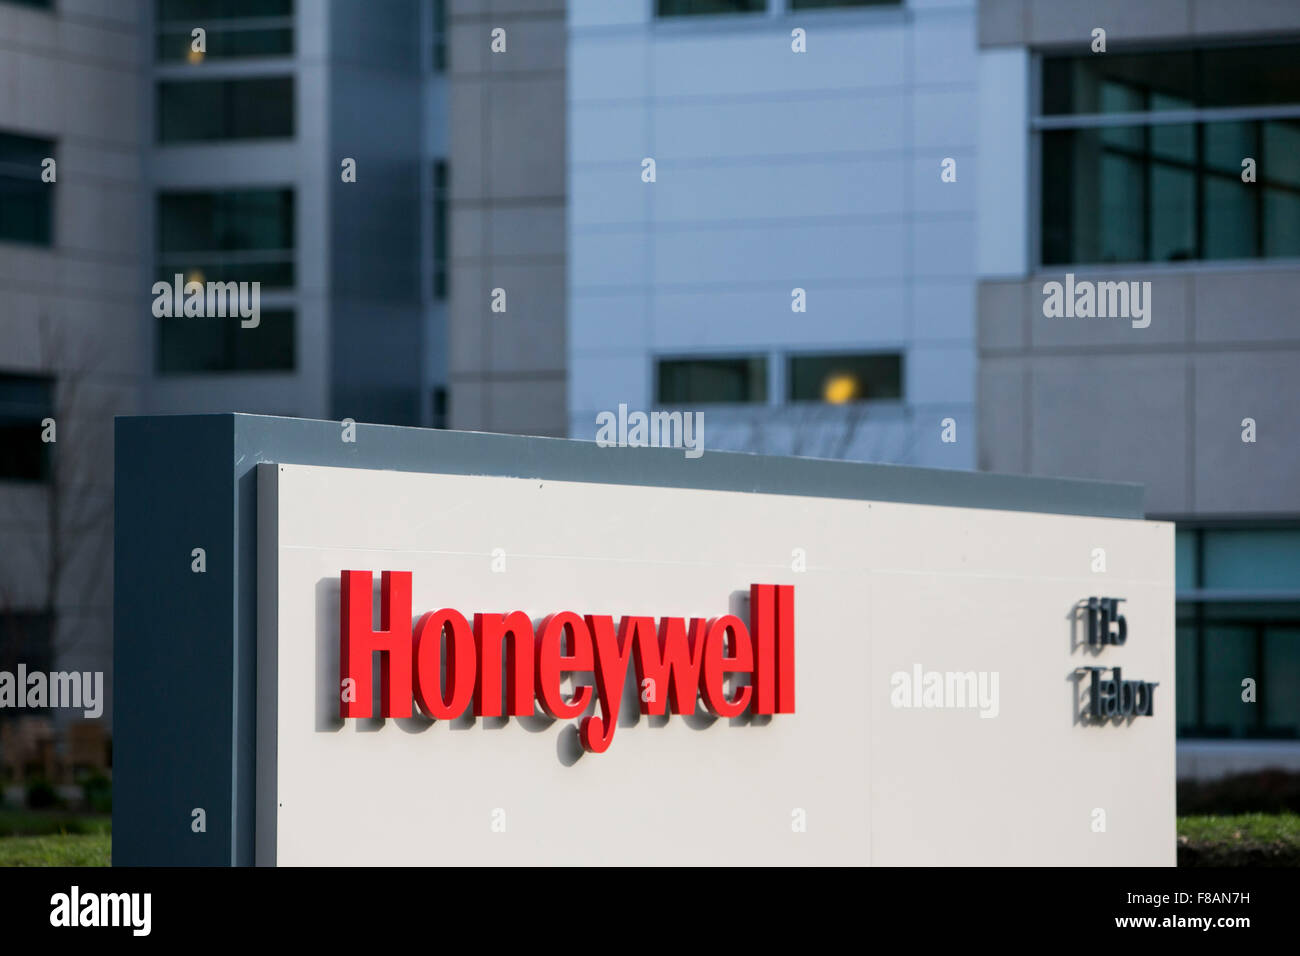 Honeywell Stock Photos & Honeywell Stock Images - Alamy